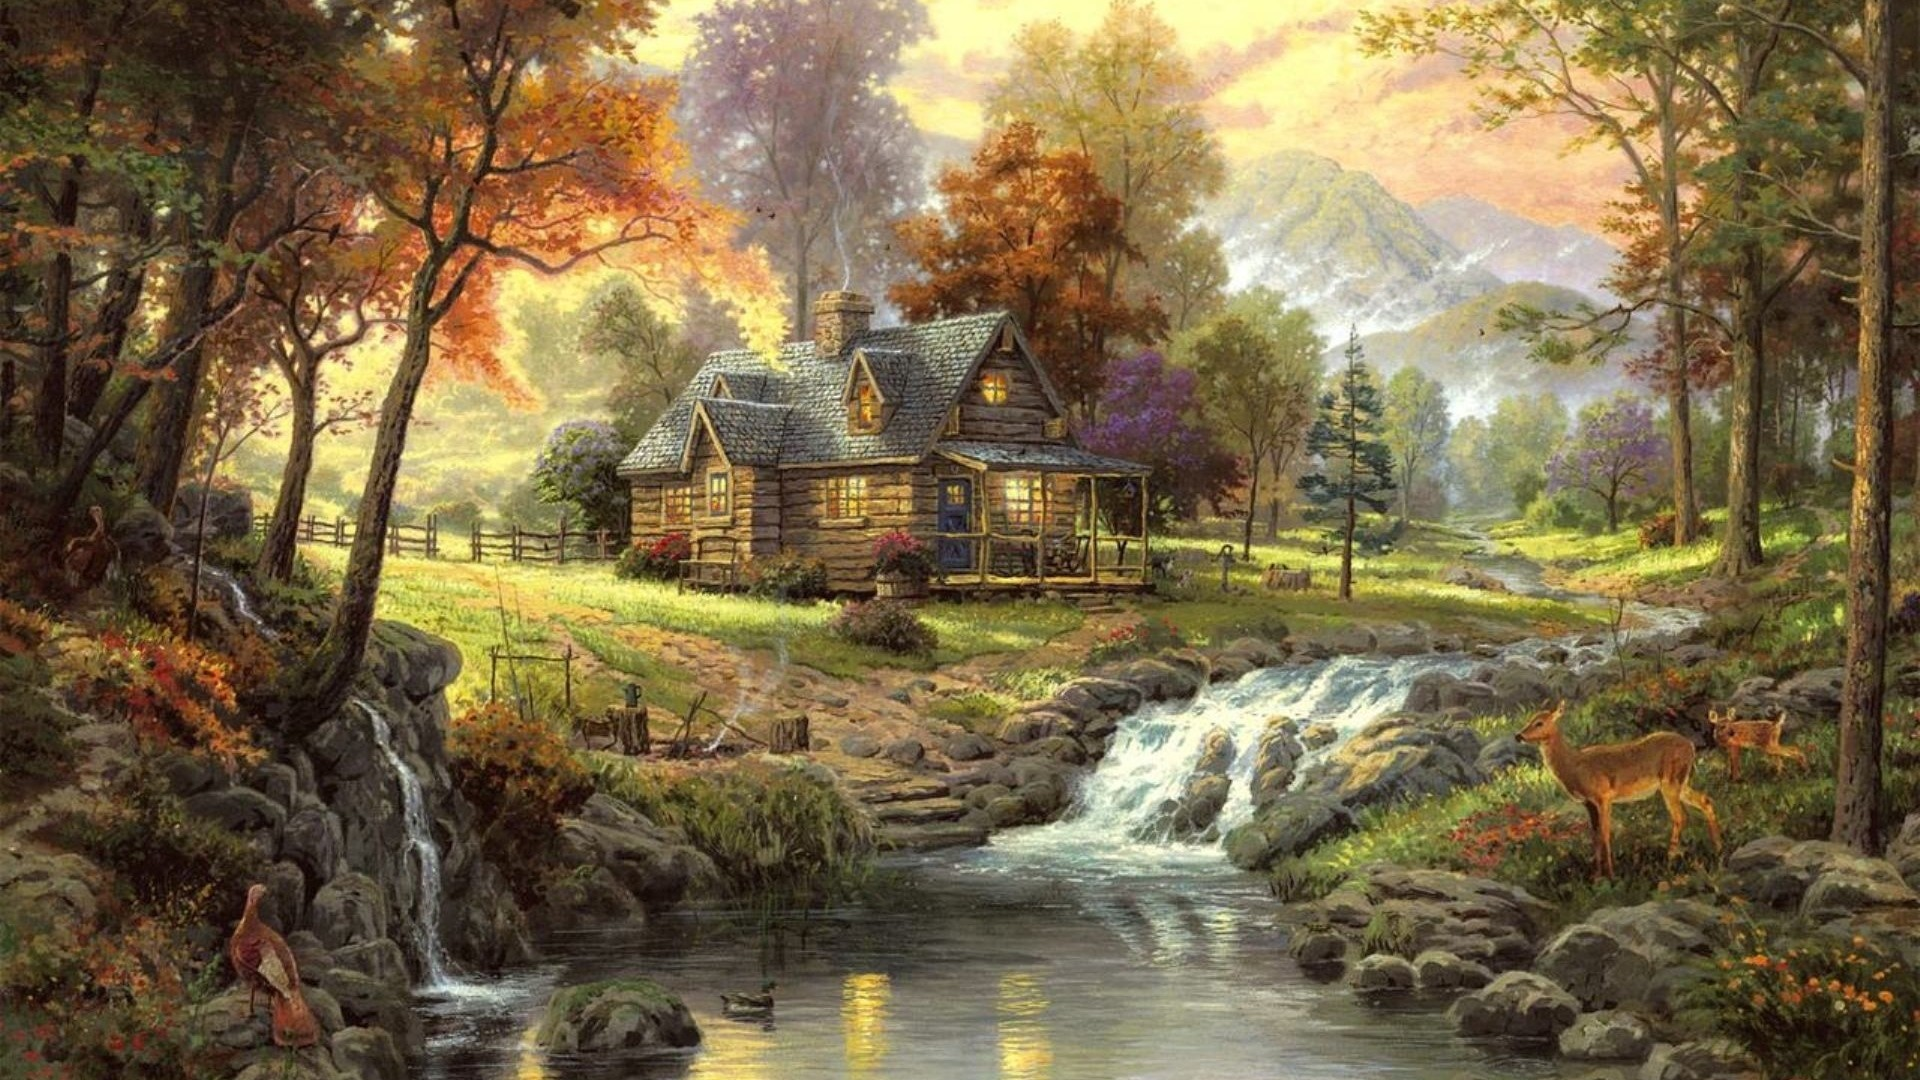 1920x1080  Wallpaper landscape, painting, art, house, forest, river, animals